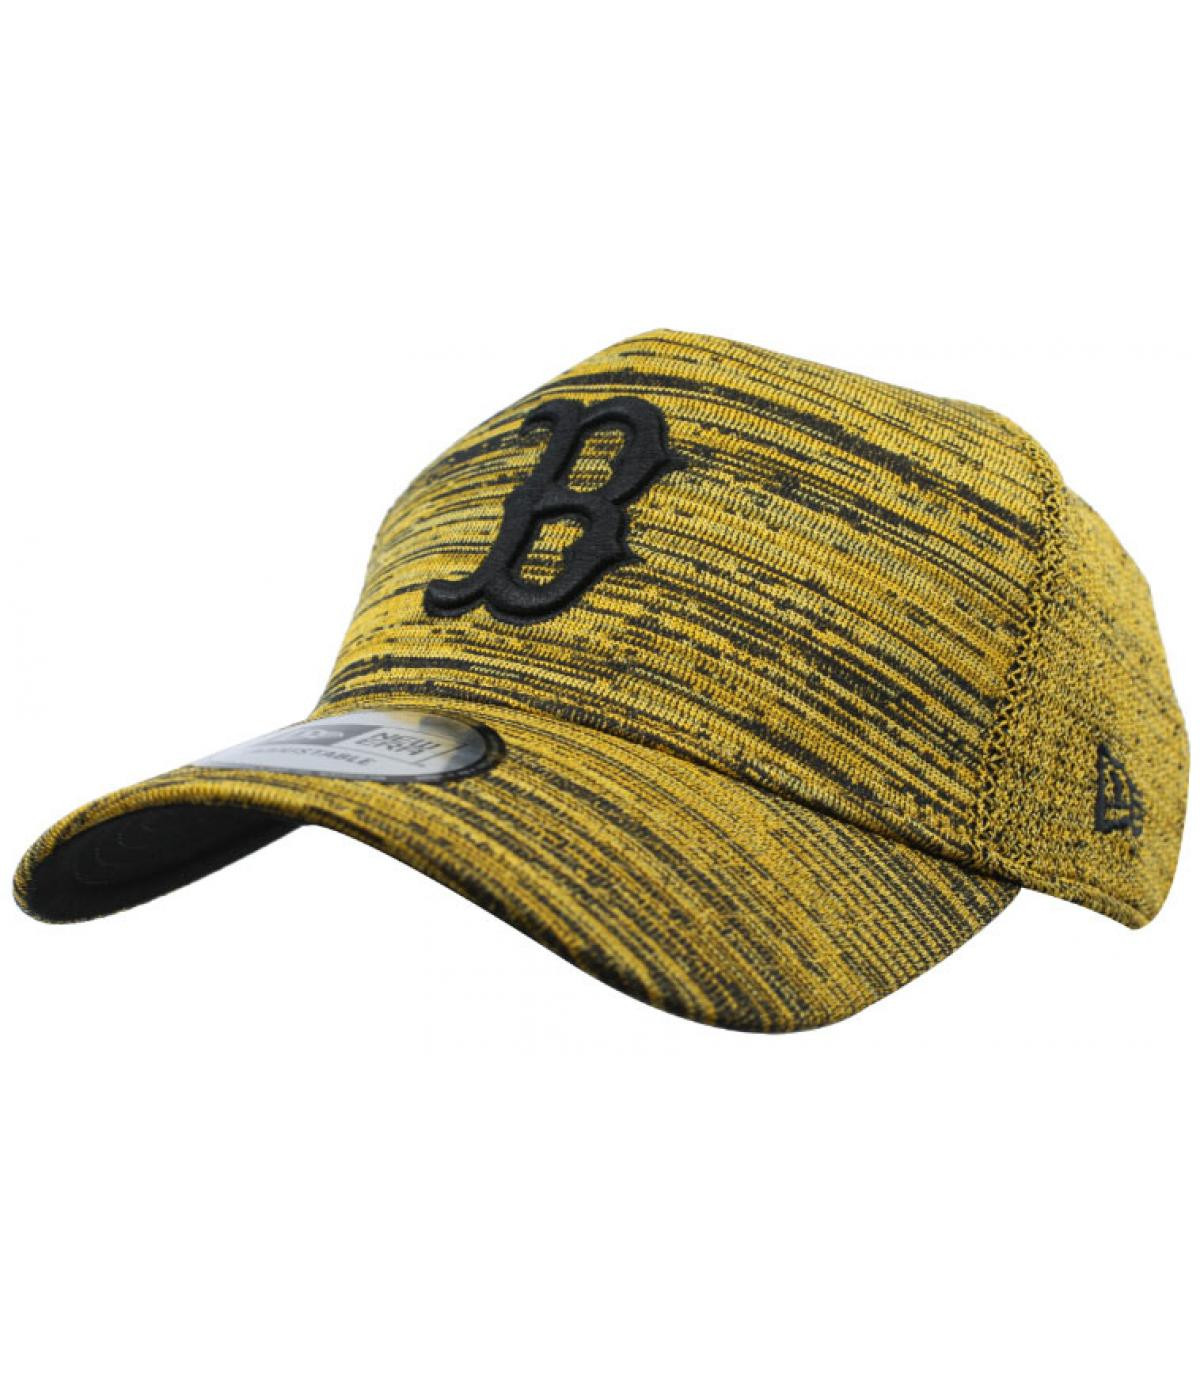 Détails Casquette Engineered Fit A Frame Boston yellow black - image 2